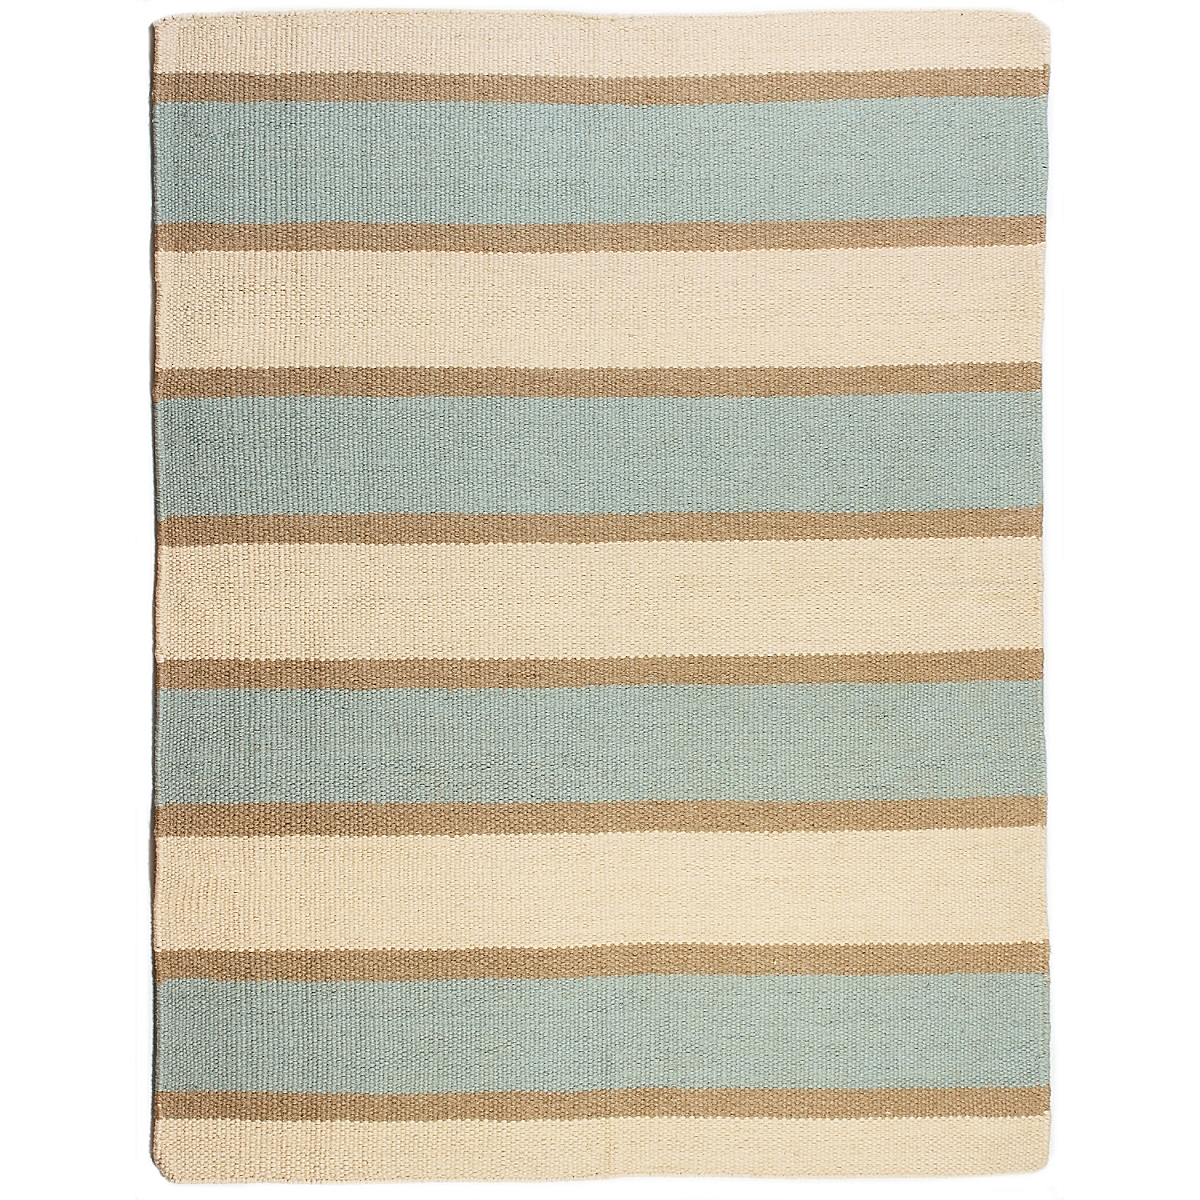 Robinson Point Wool Berber Striped Rug